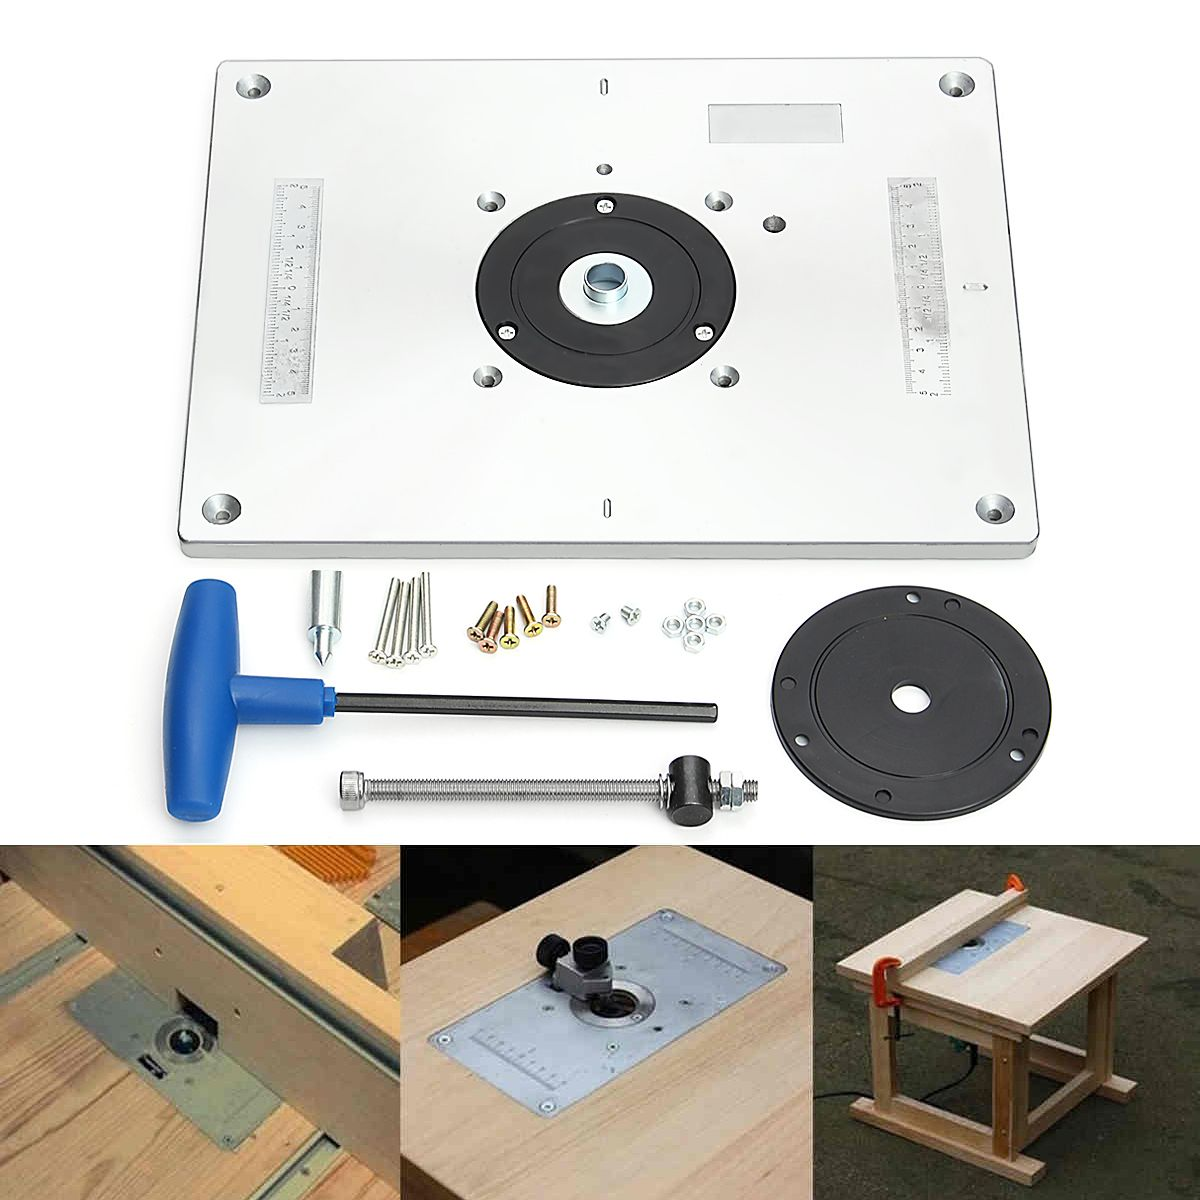 Aluminum Router Table Insert Plate For Popular Router Trimmers Models Engrving Machine DIY Woodworking Benches